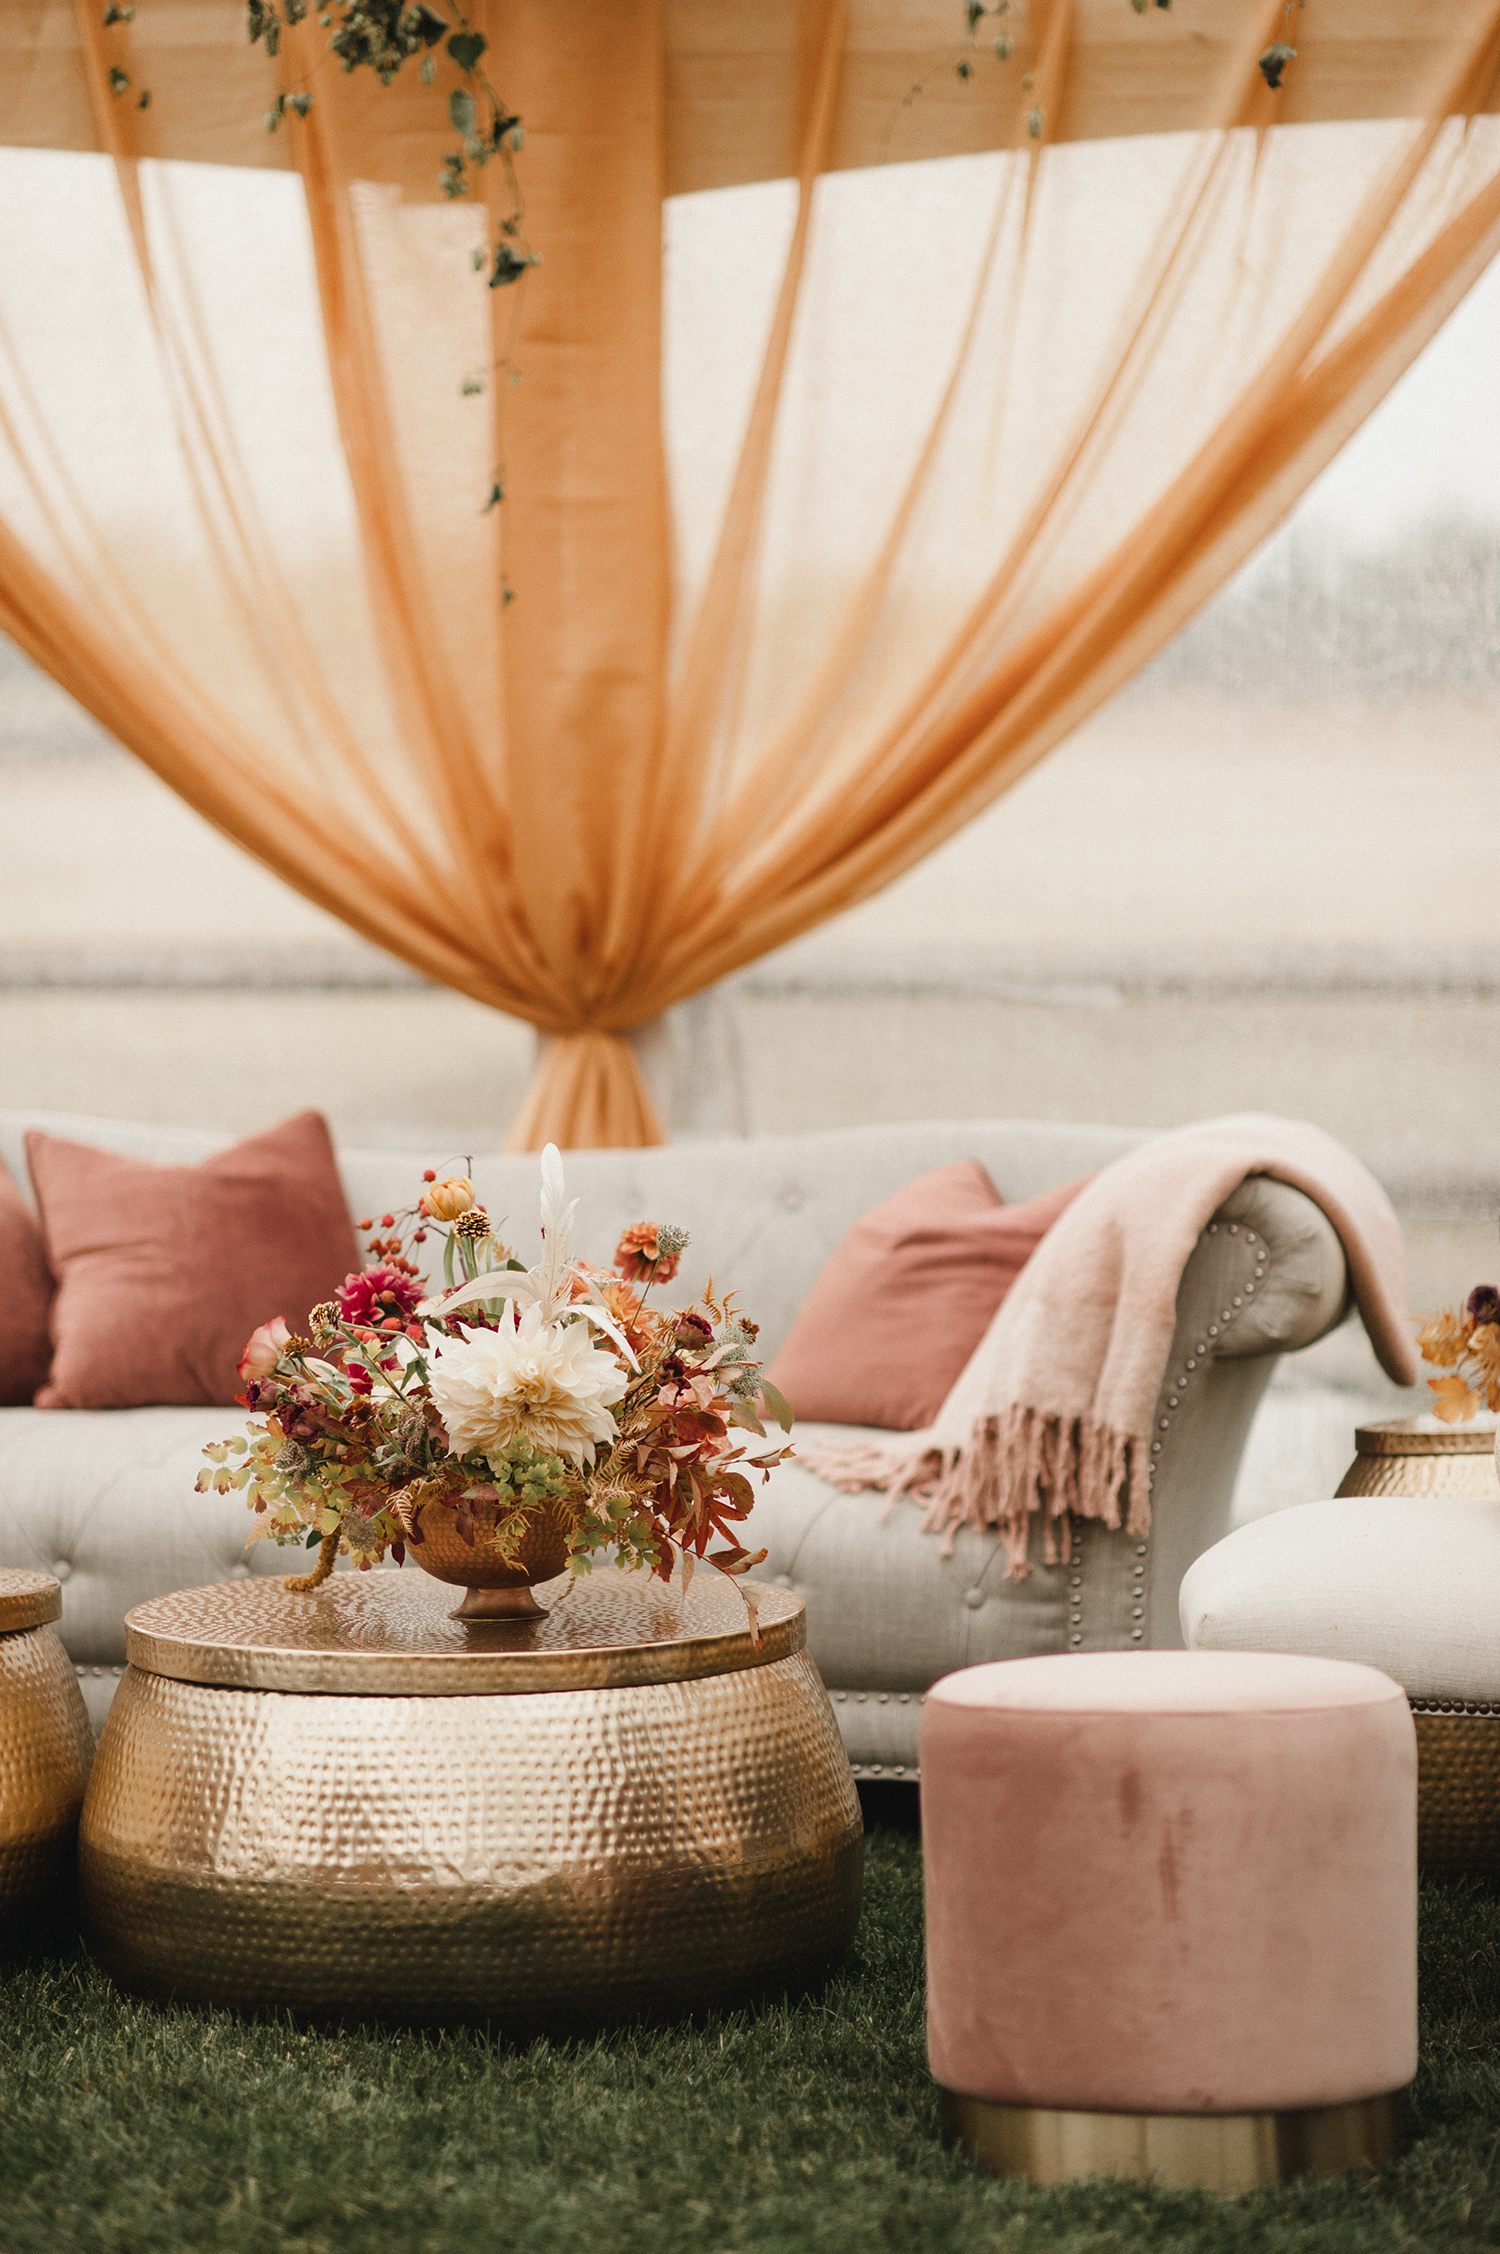 wedding lounge beige and orange couch and flowers